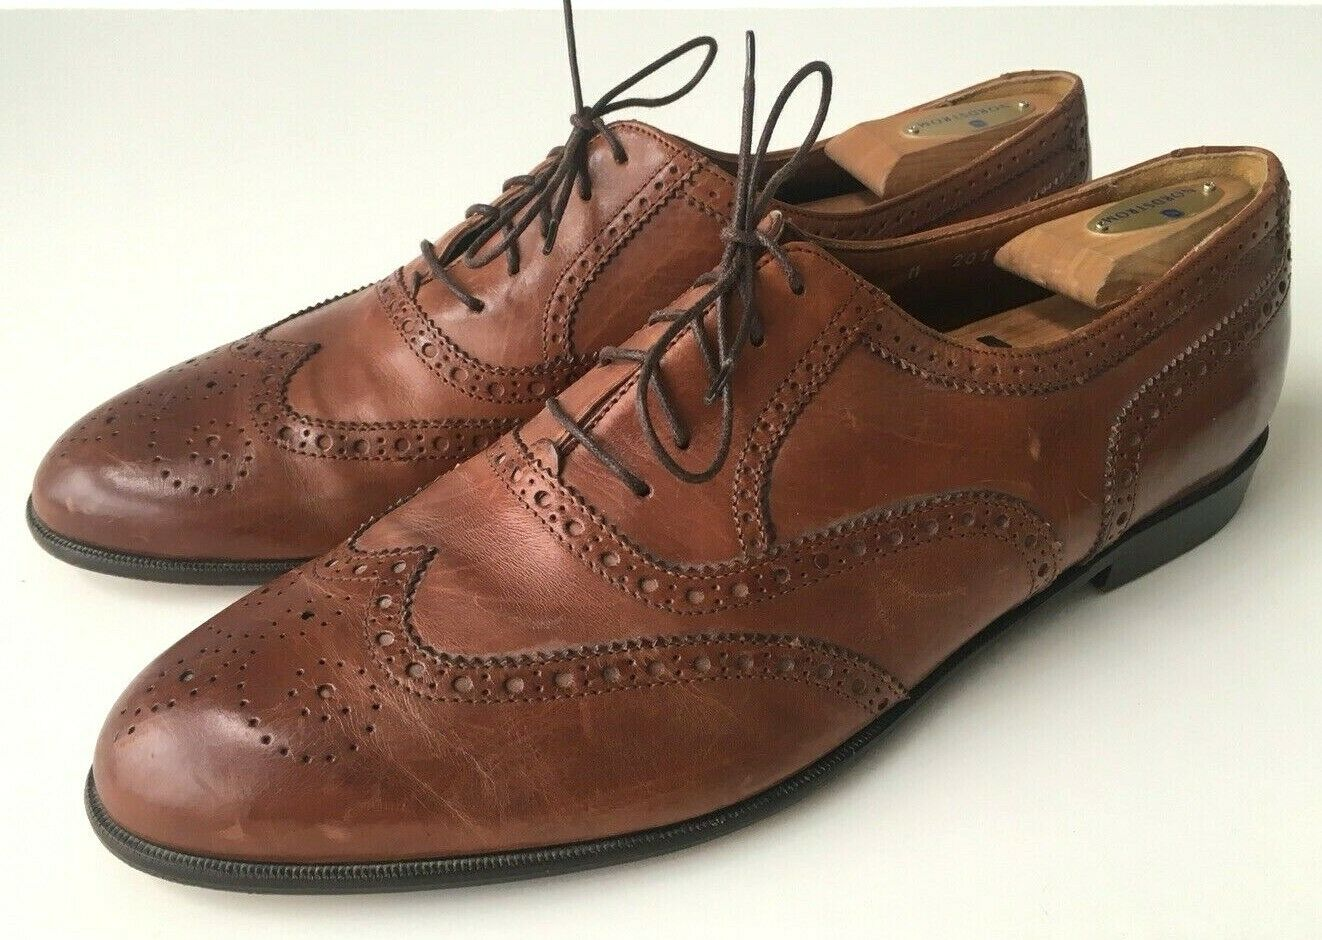 c841ae3e51daa Brown Leather Wing Tip Oxford Made in Men's 13 M Florentine ...